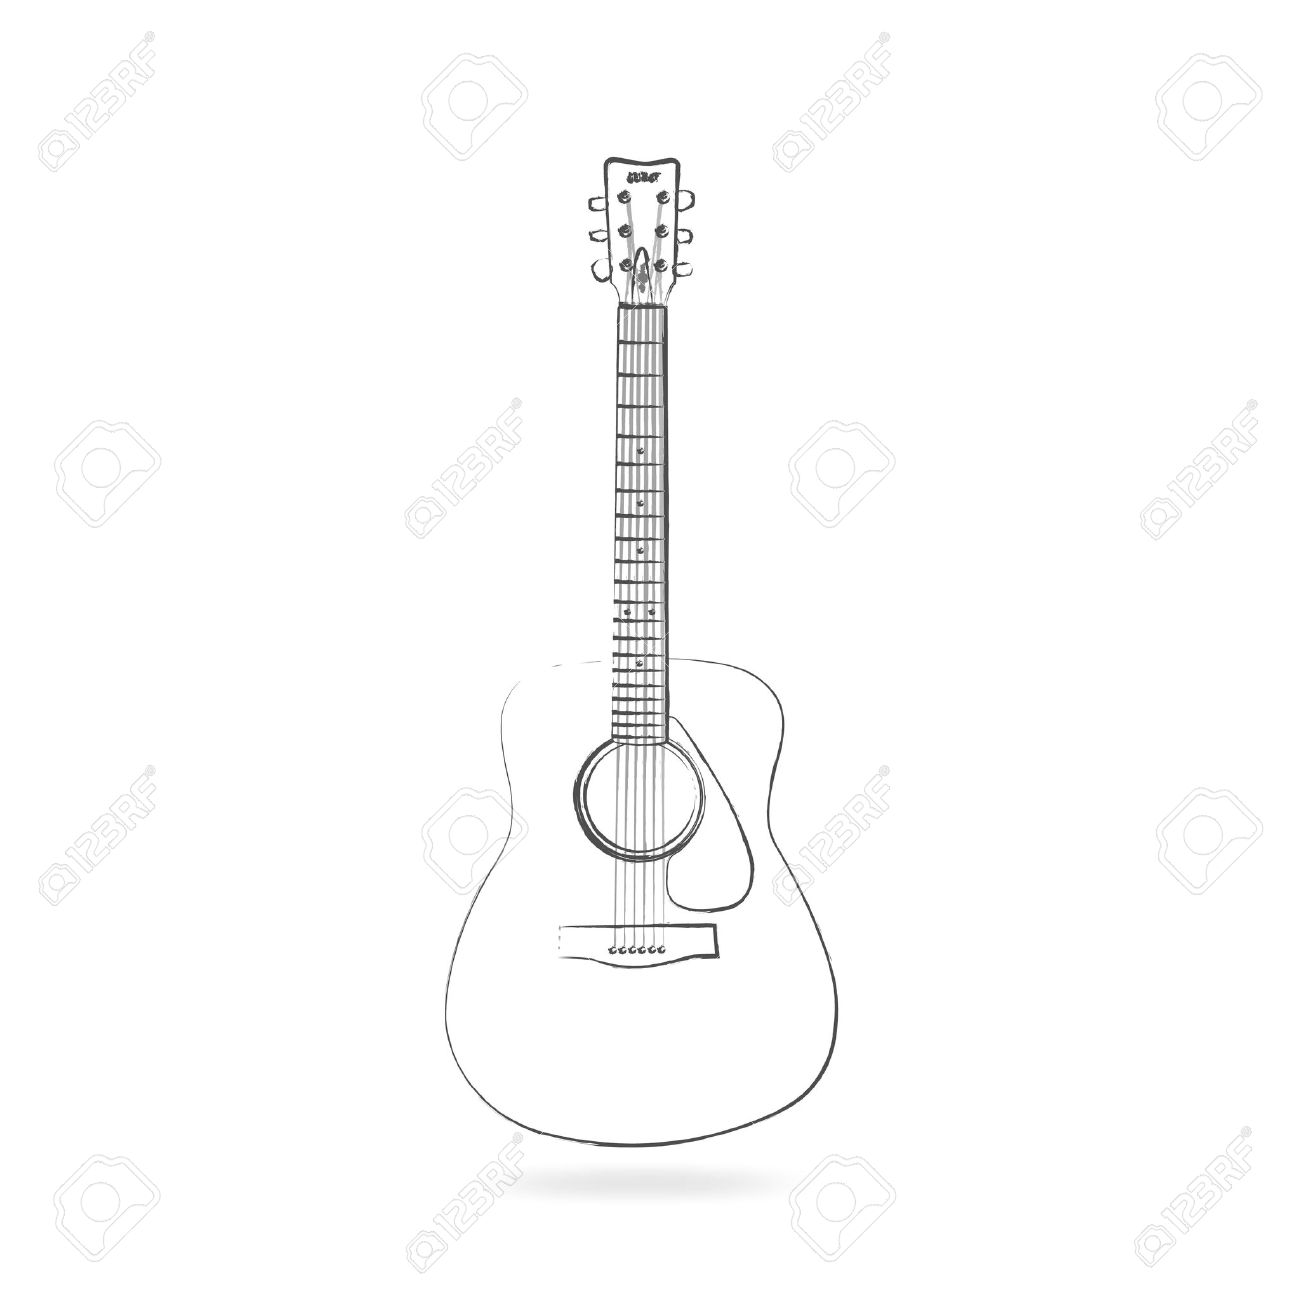 Guitar neck drawing at getdrawings free for personal use guitar neck drawing 15 guitar neck drawing